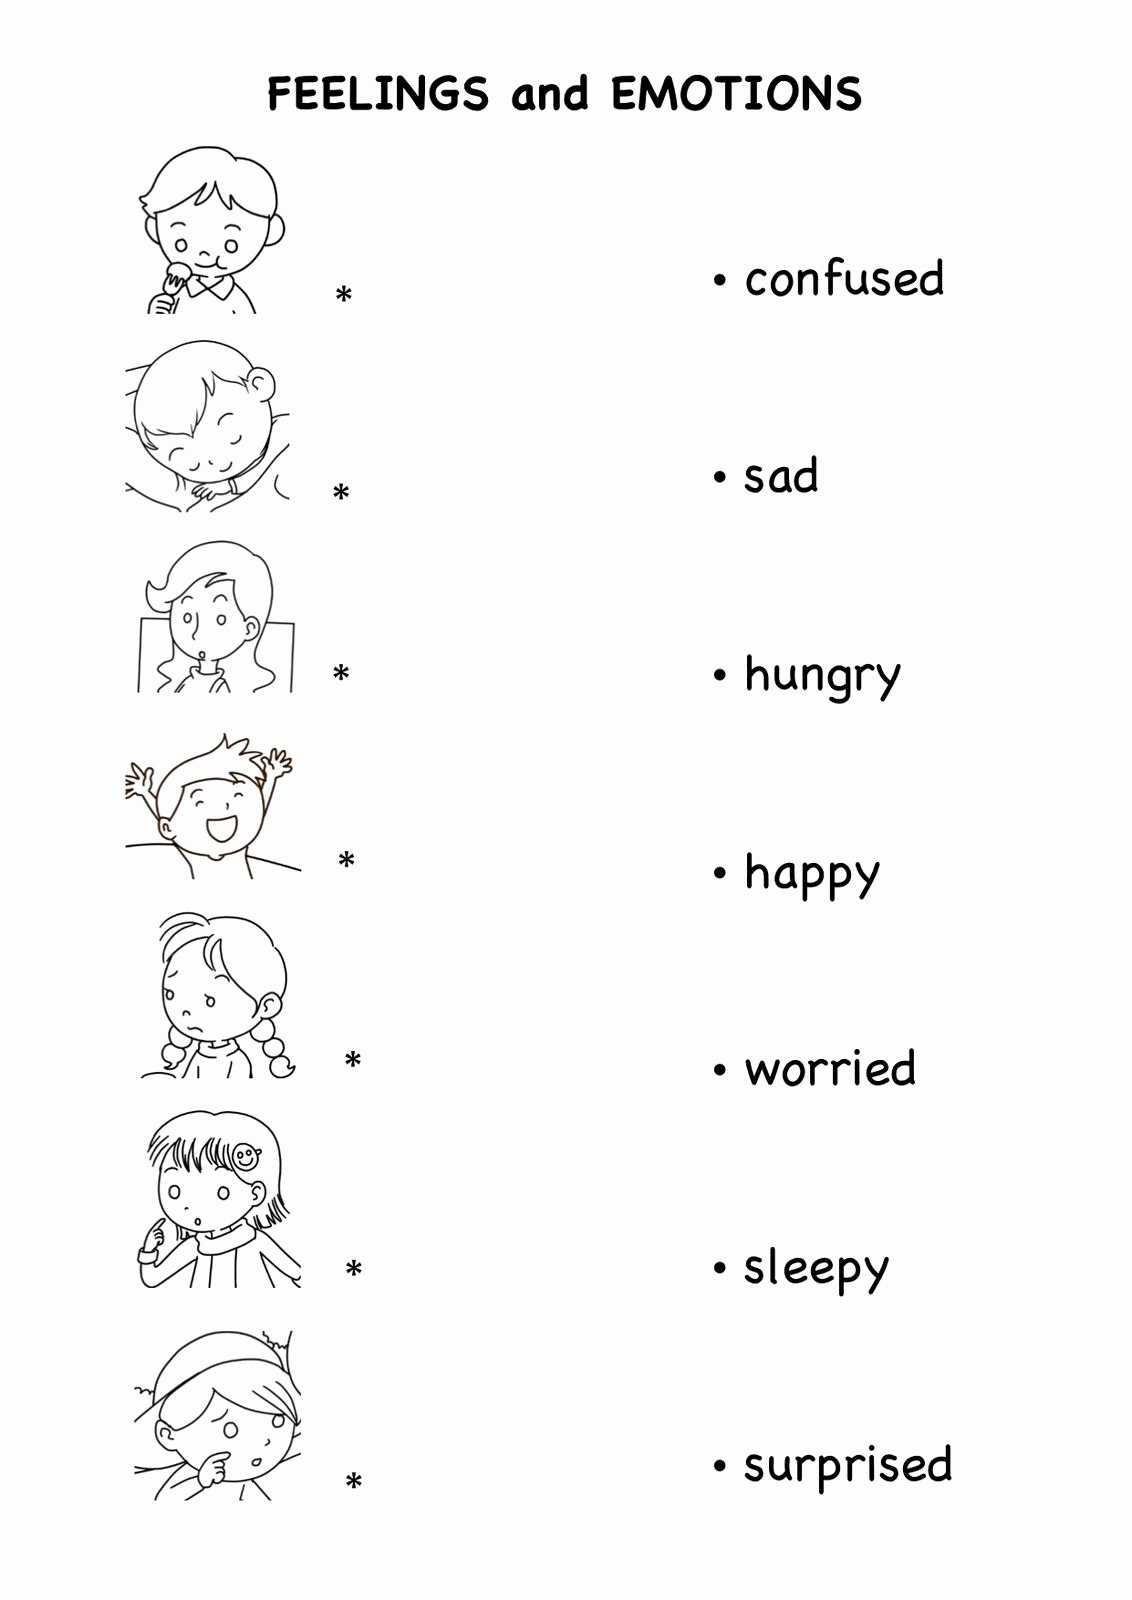 Feelings and Emotions Worksheets for Preschoolers Fresh Emotions Worksheets Pdf